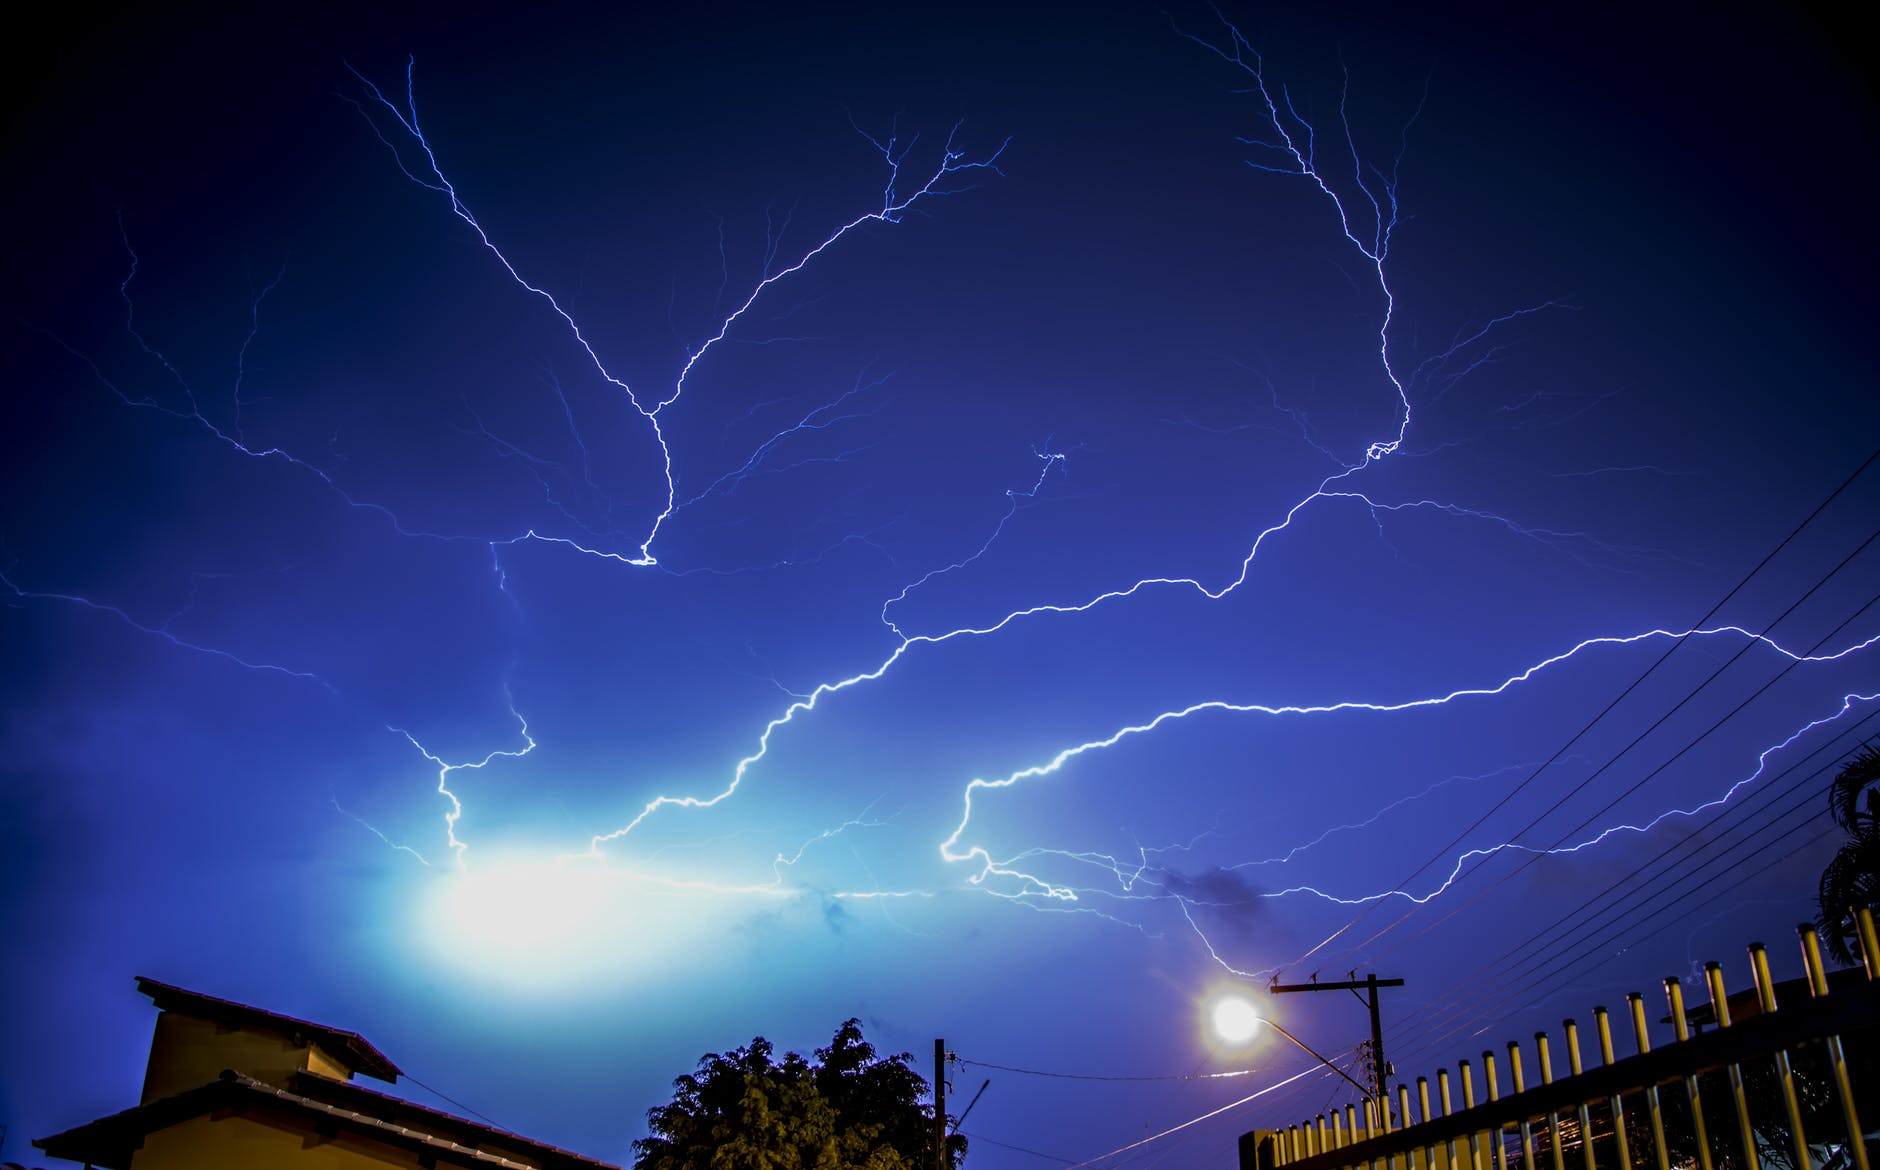 A lightning storm cut out their power.  Source: Pexels